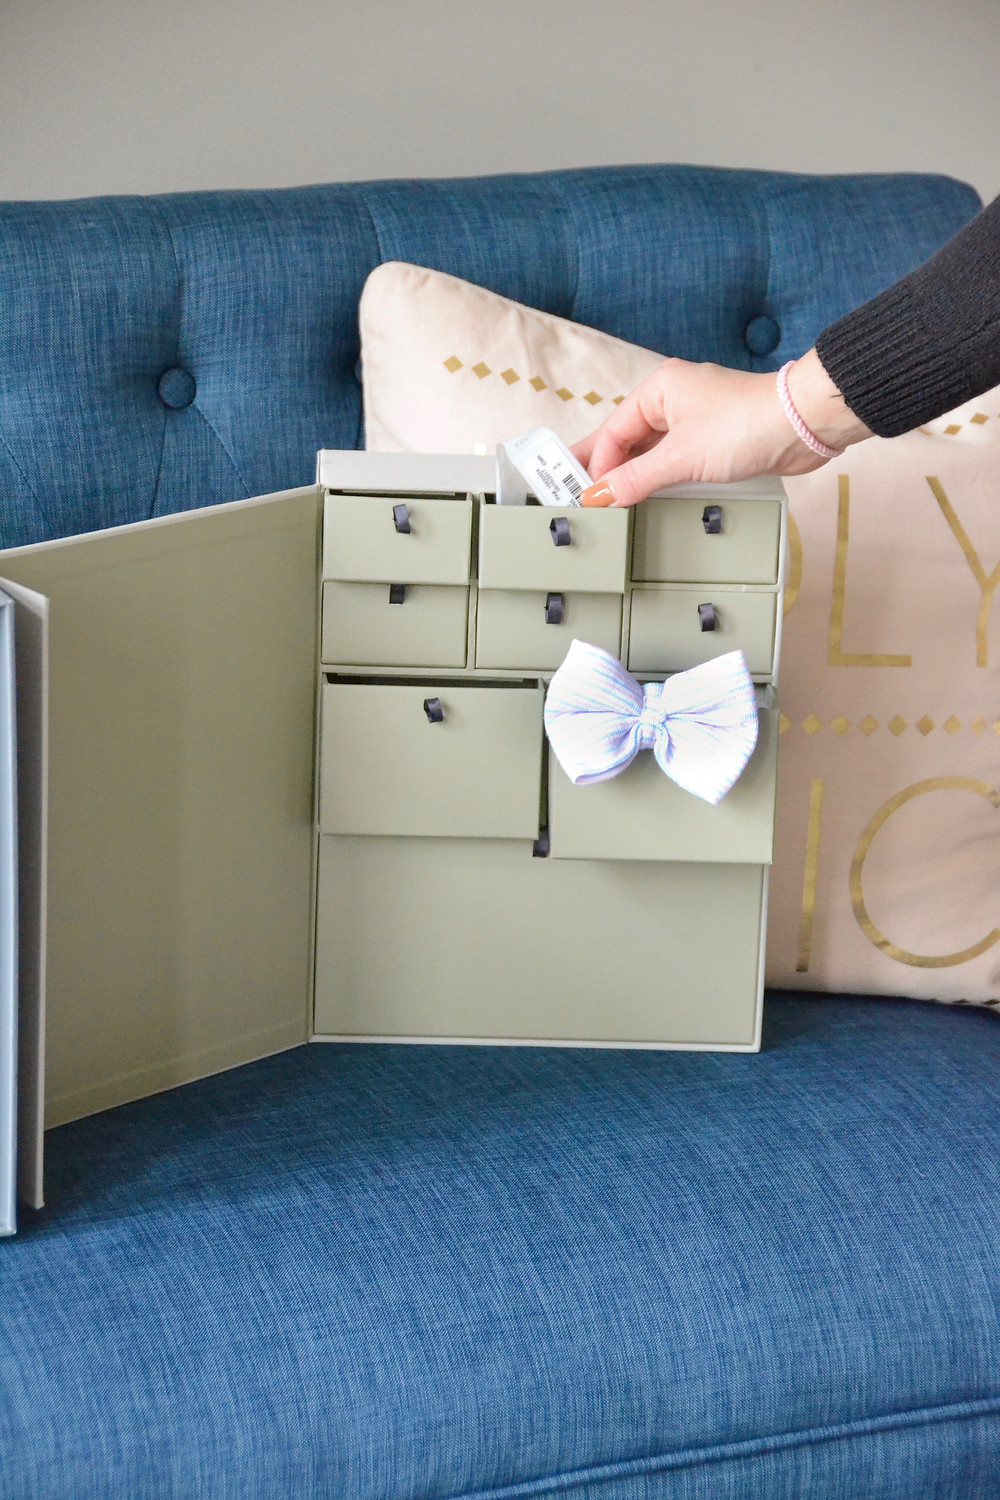 savor-keepsake-memory-box-with-hospital-bracelet-and-newborn-hat-on-our-life-in-rose-gold-blog